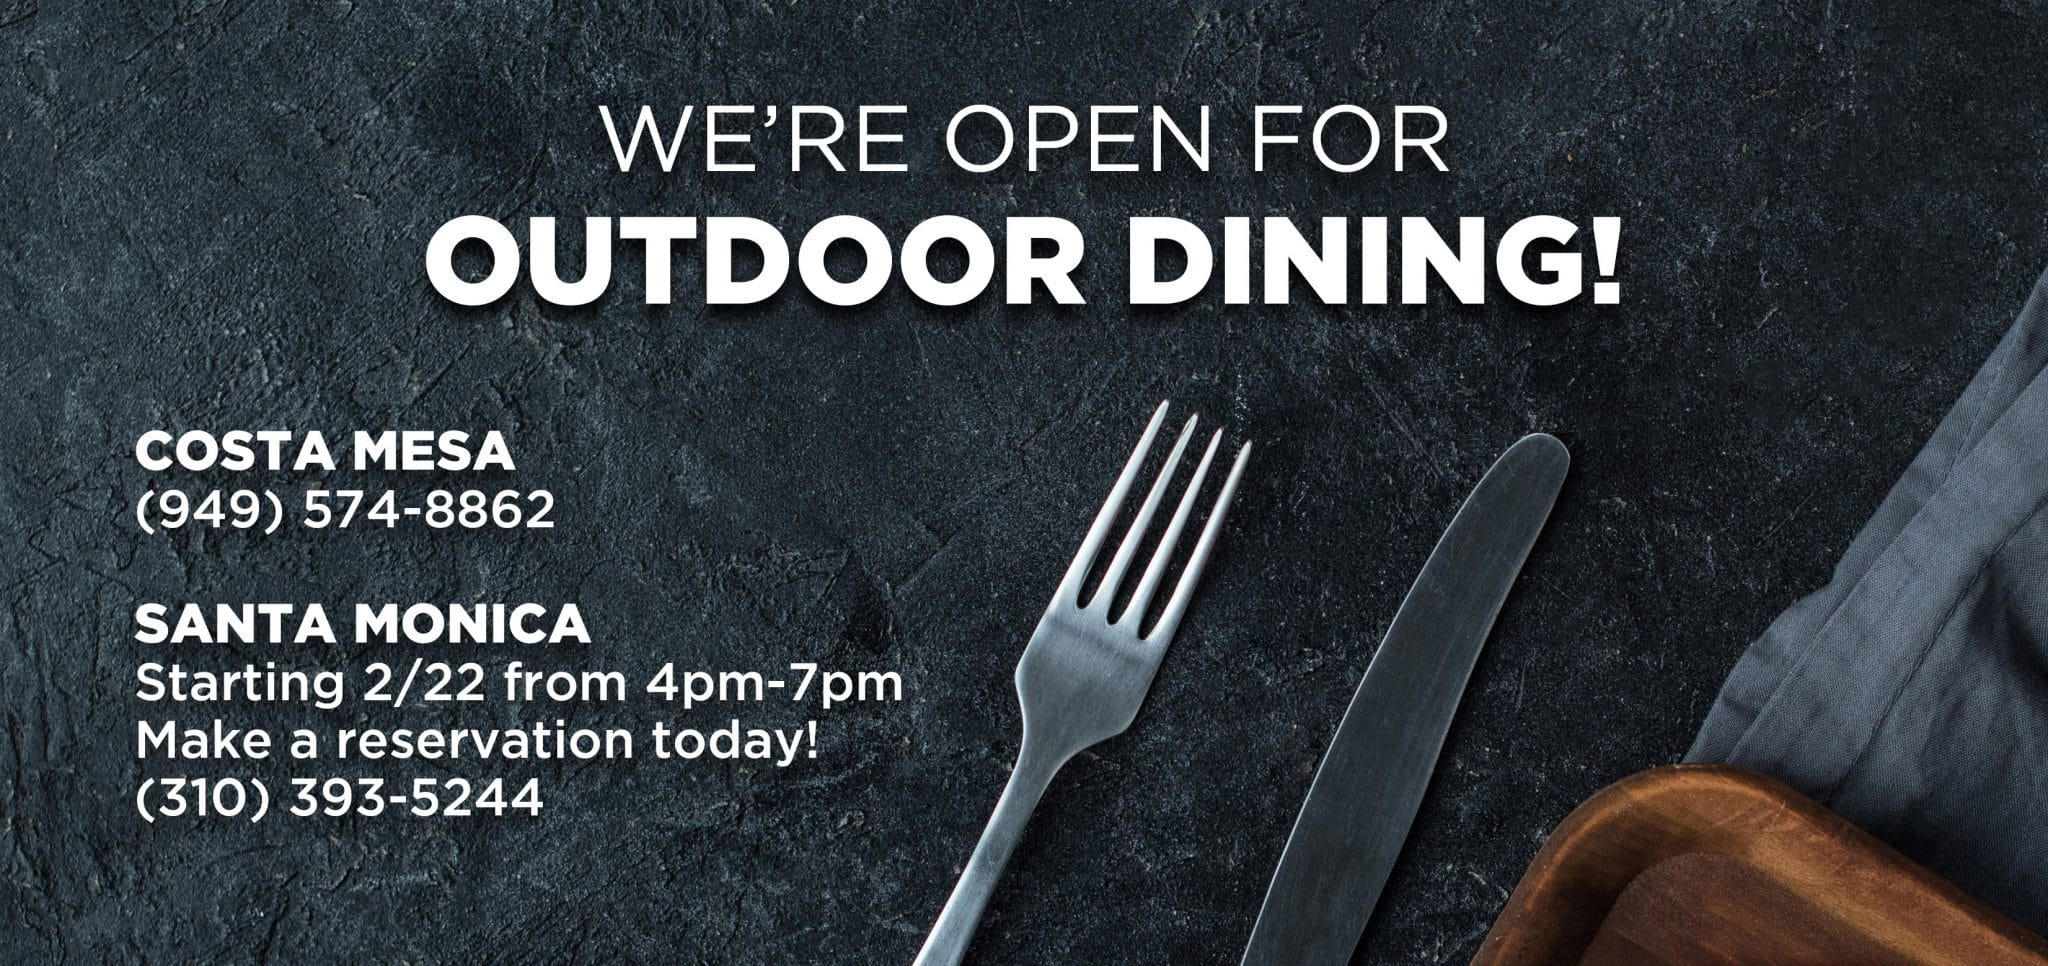 web banner open for outdoor dining